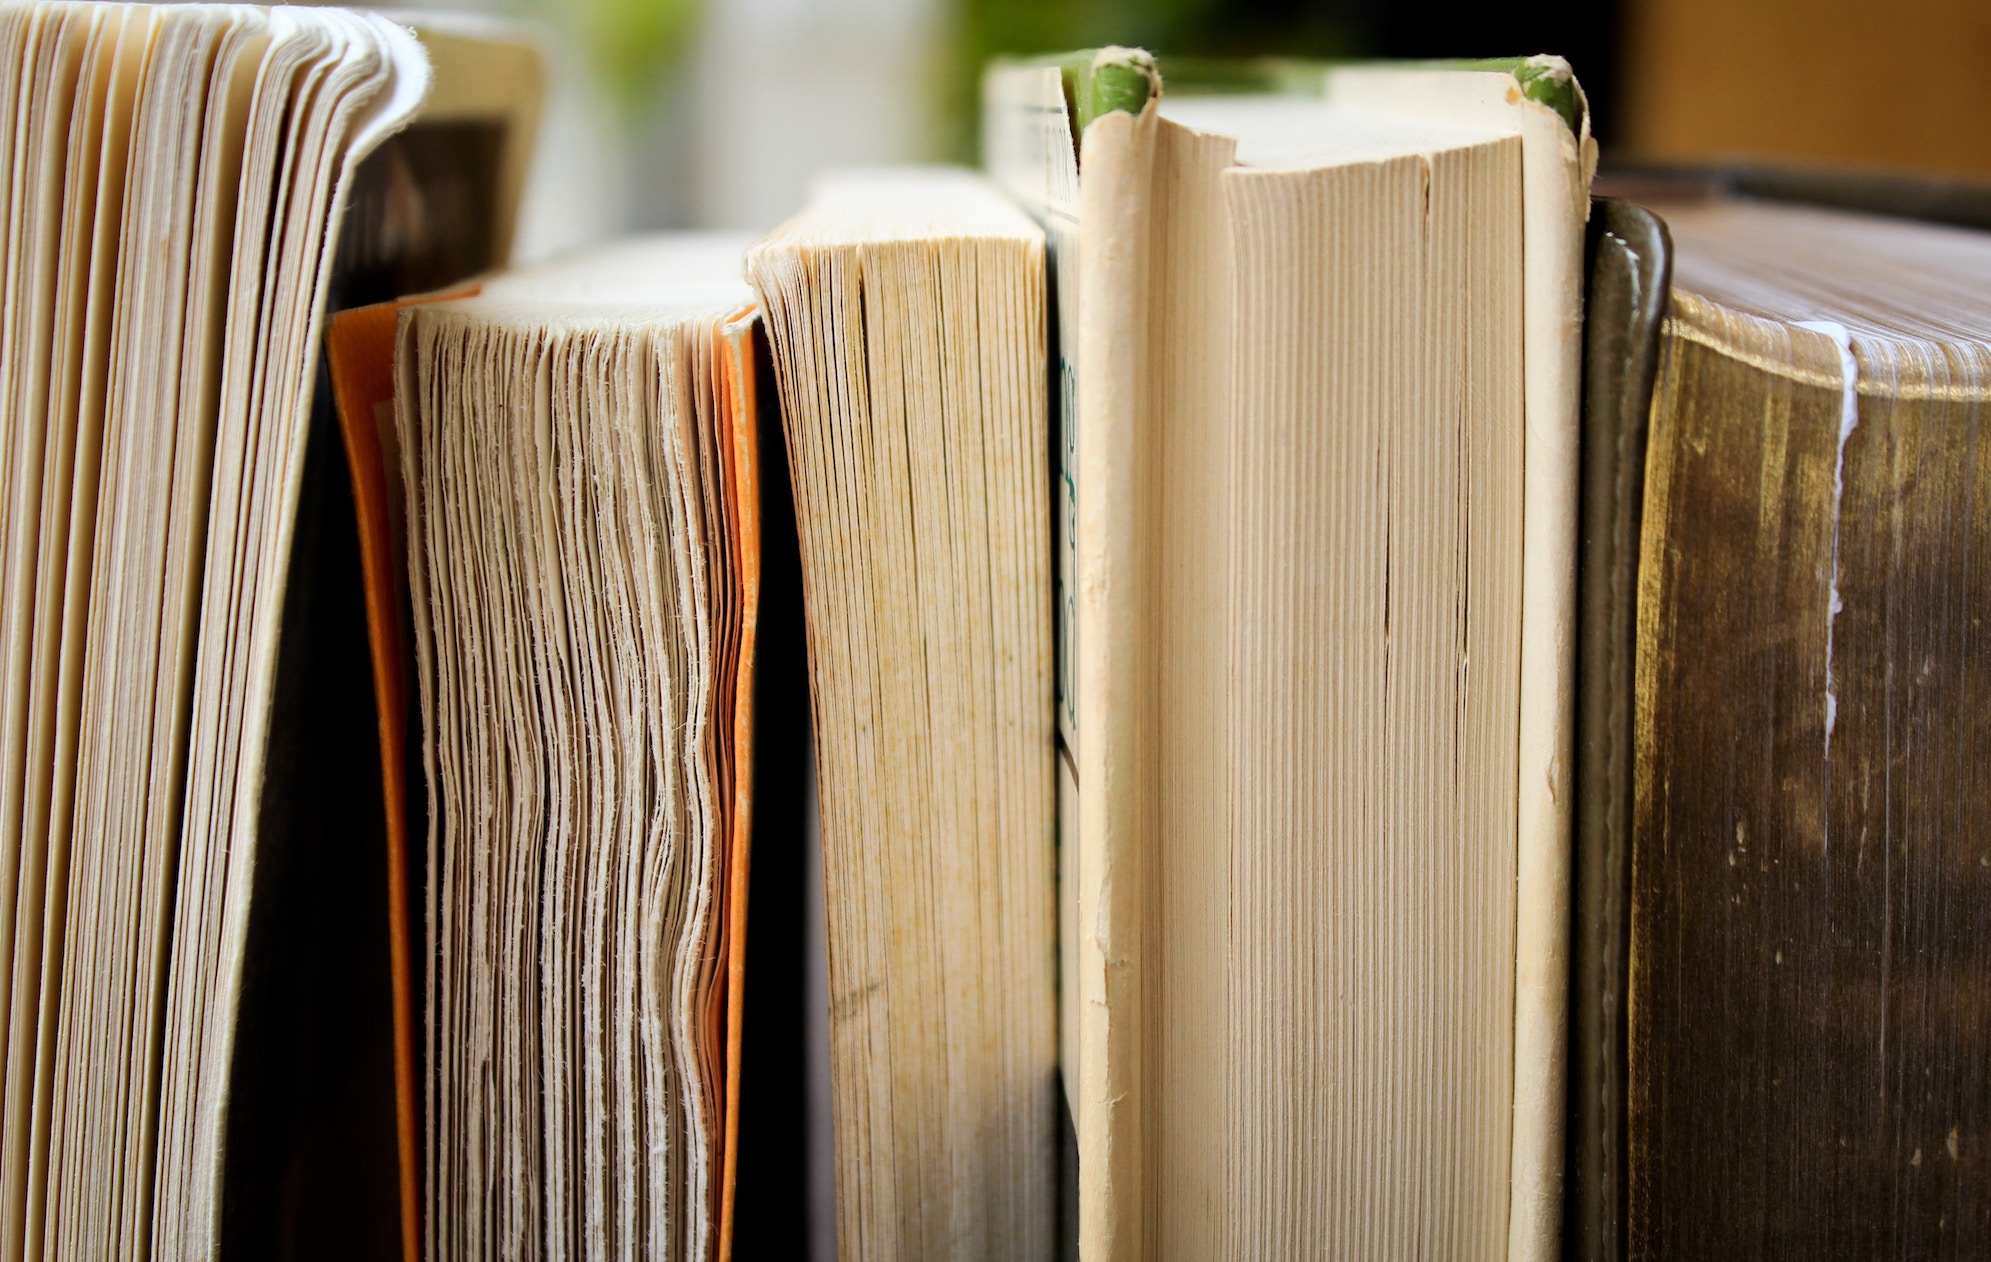 7 Quick Reads to Help B2B Marketers Stay Sharp at Work